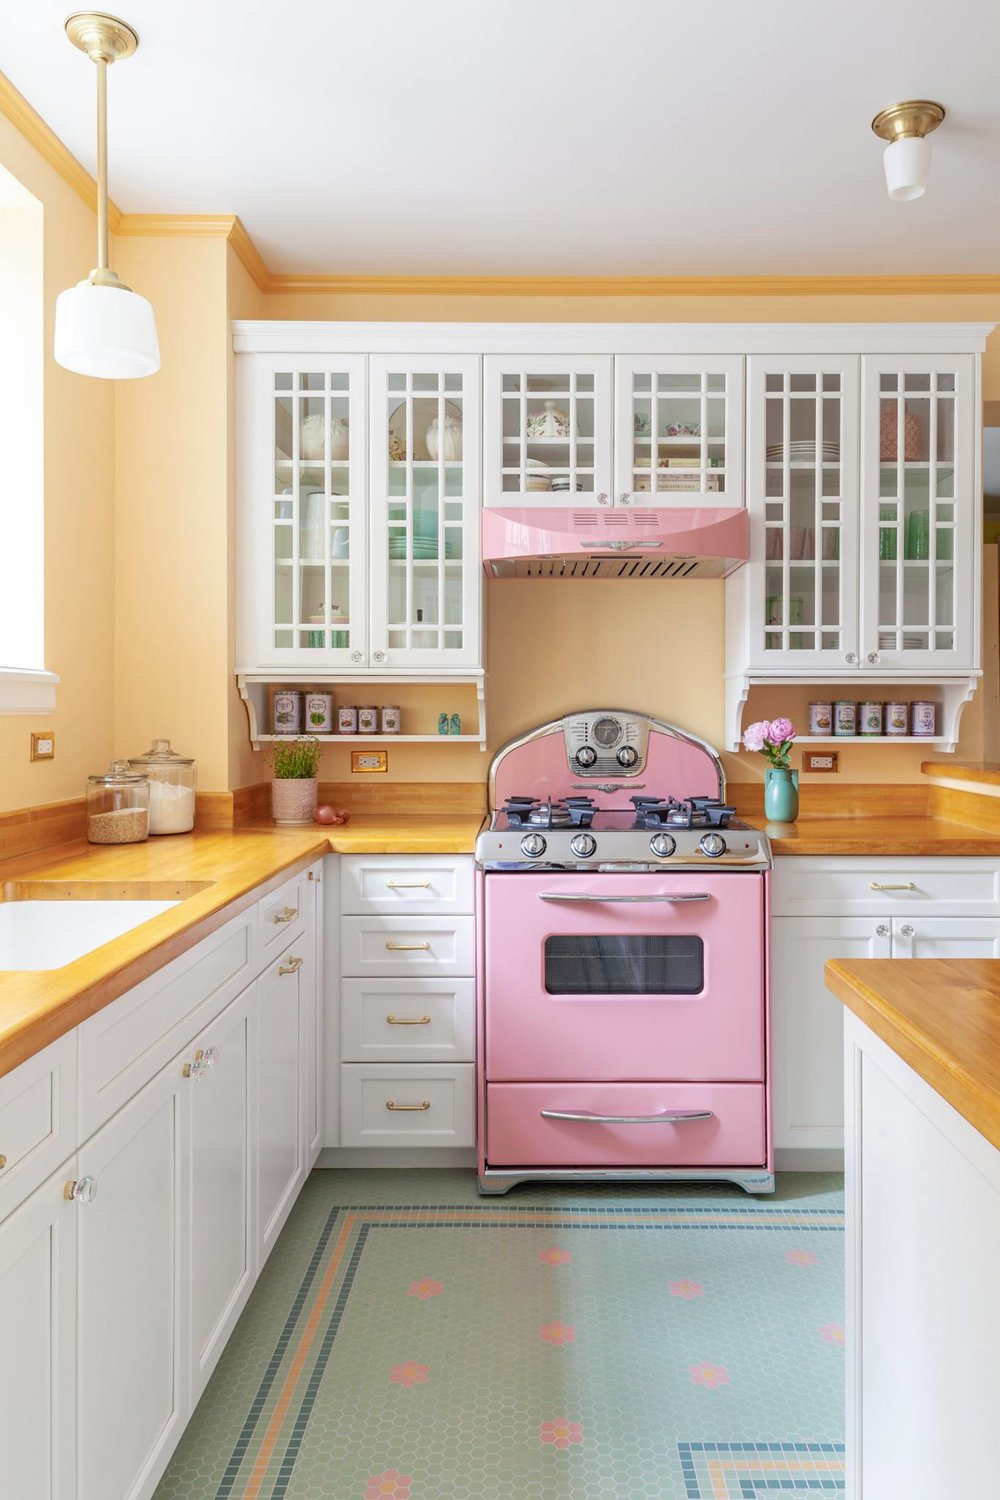 Incorporating Colorful Appliances Into Your Kitchen The